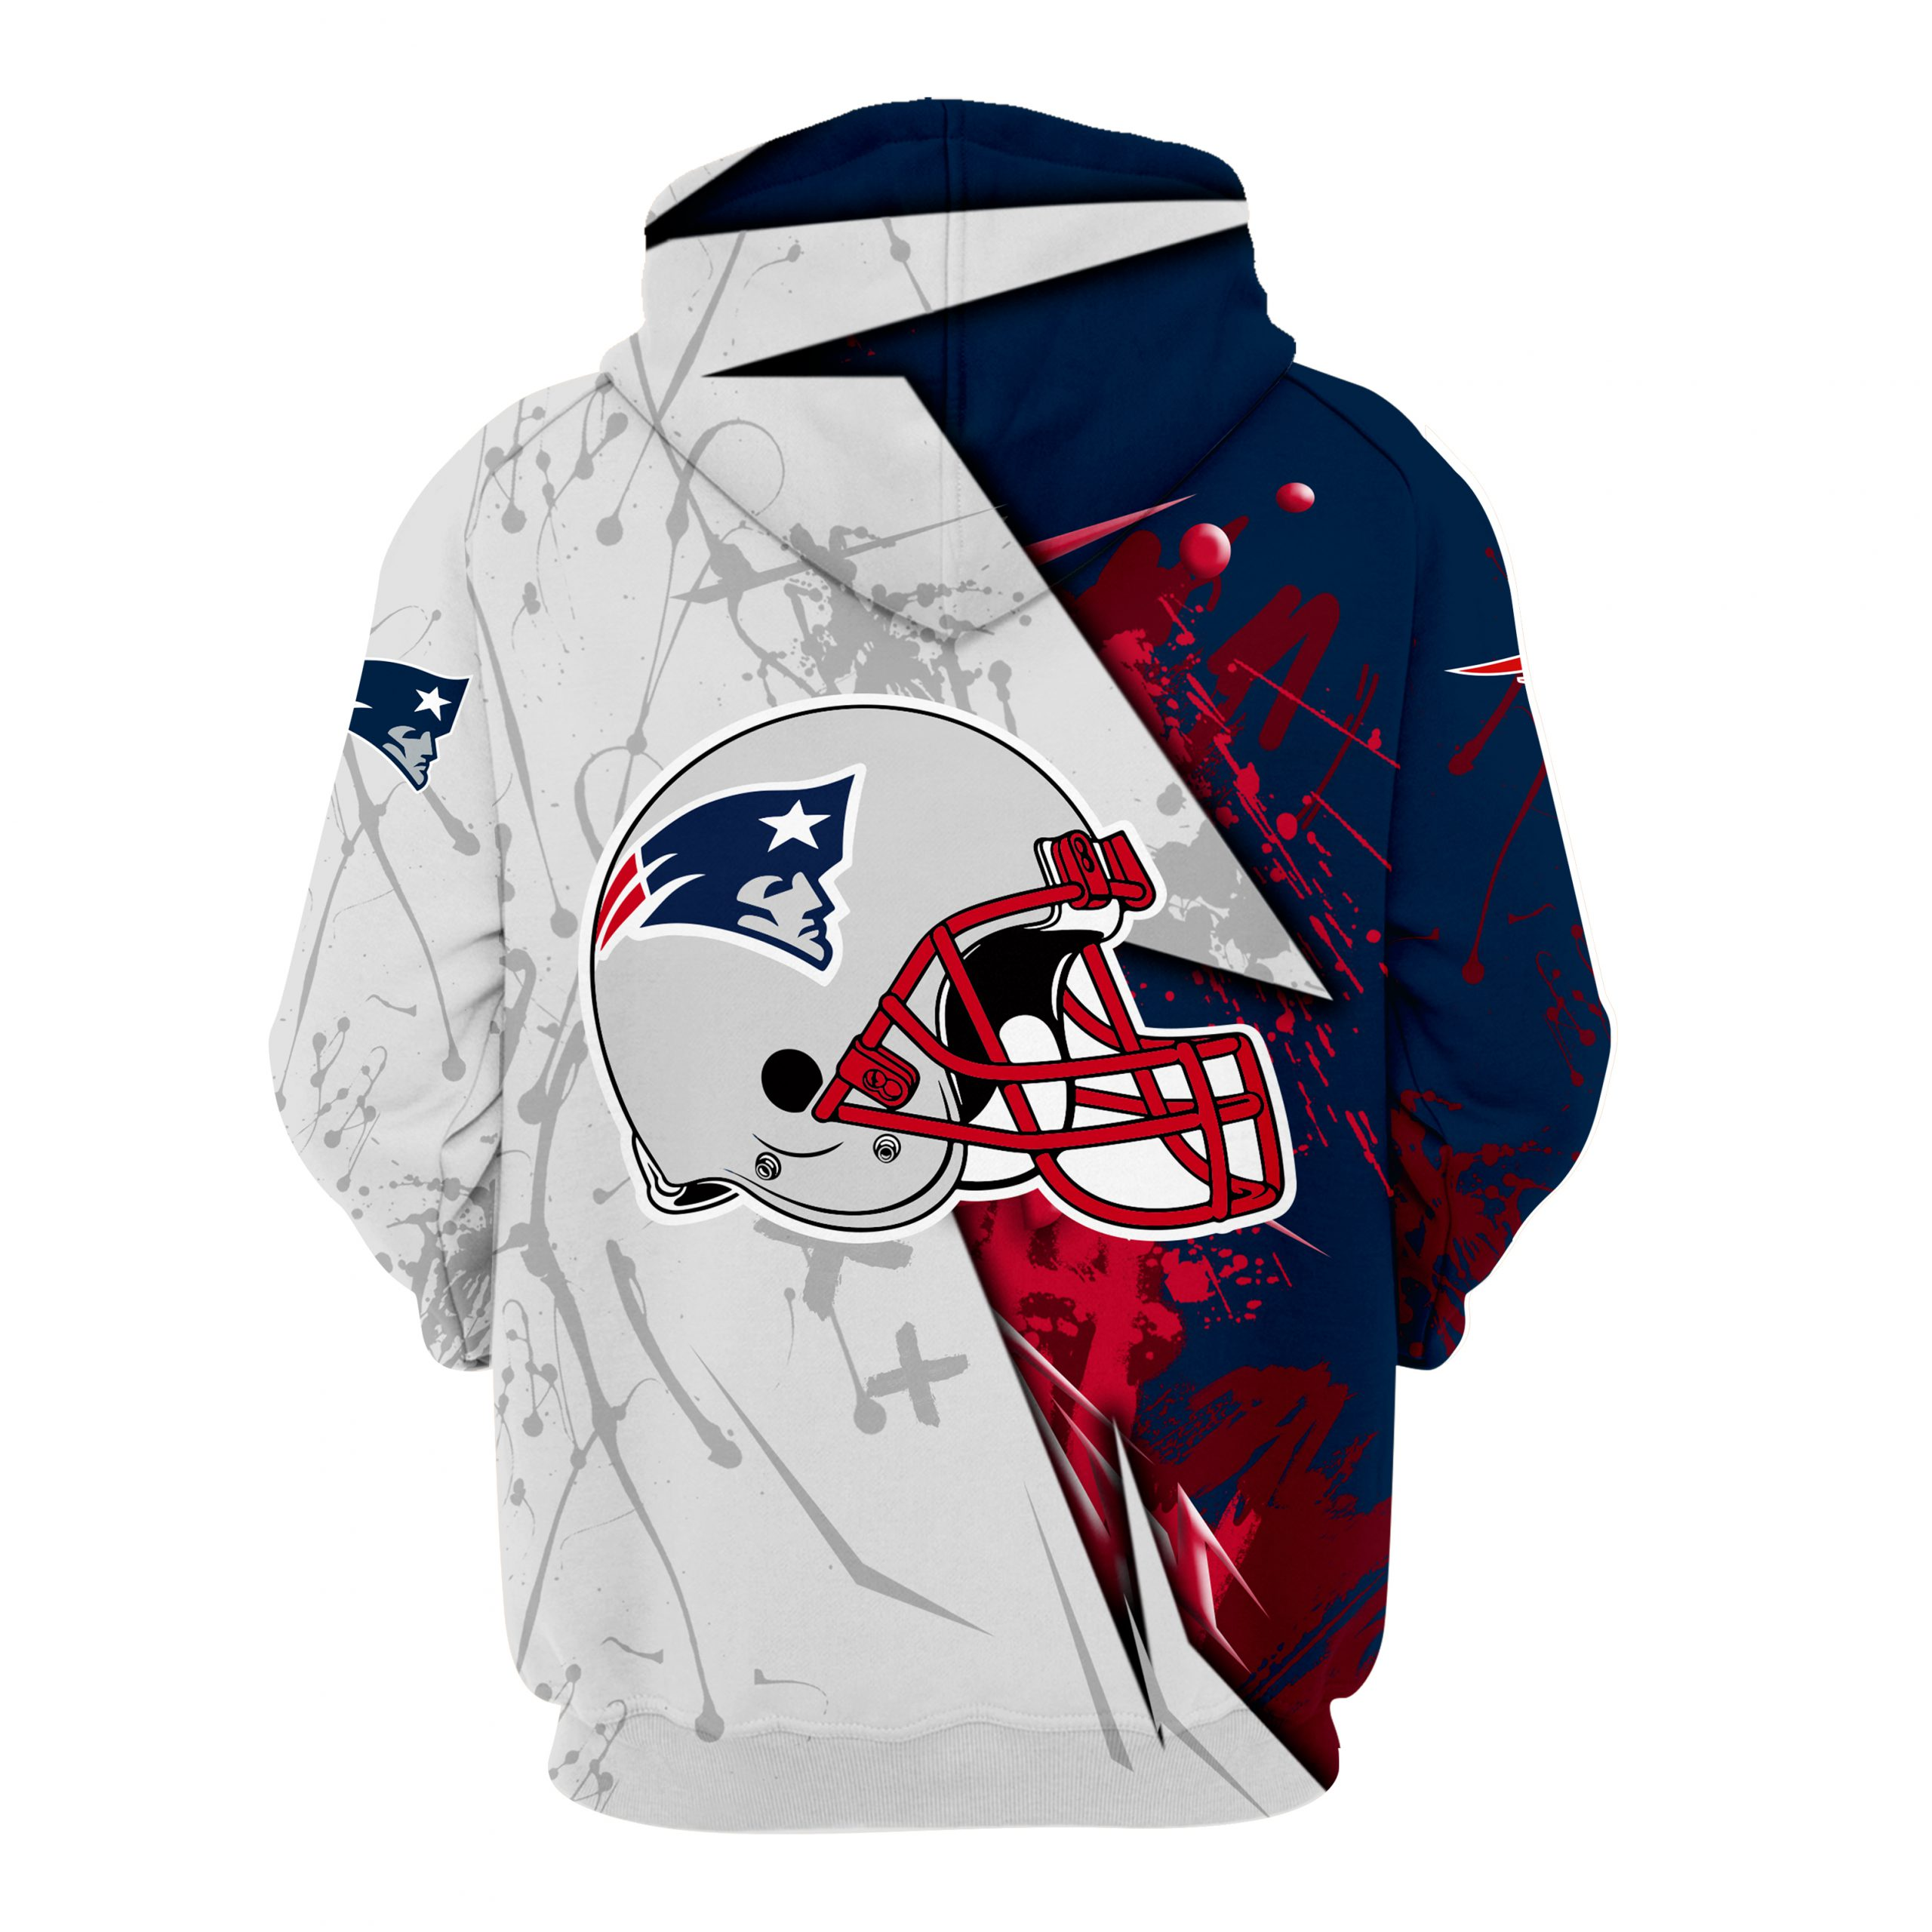 NFL new england patriots all over printed hoodie -back